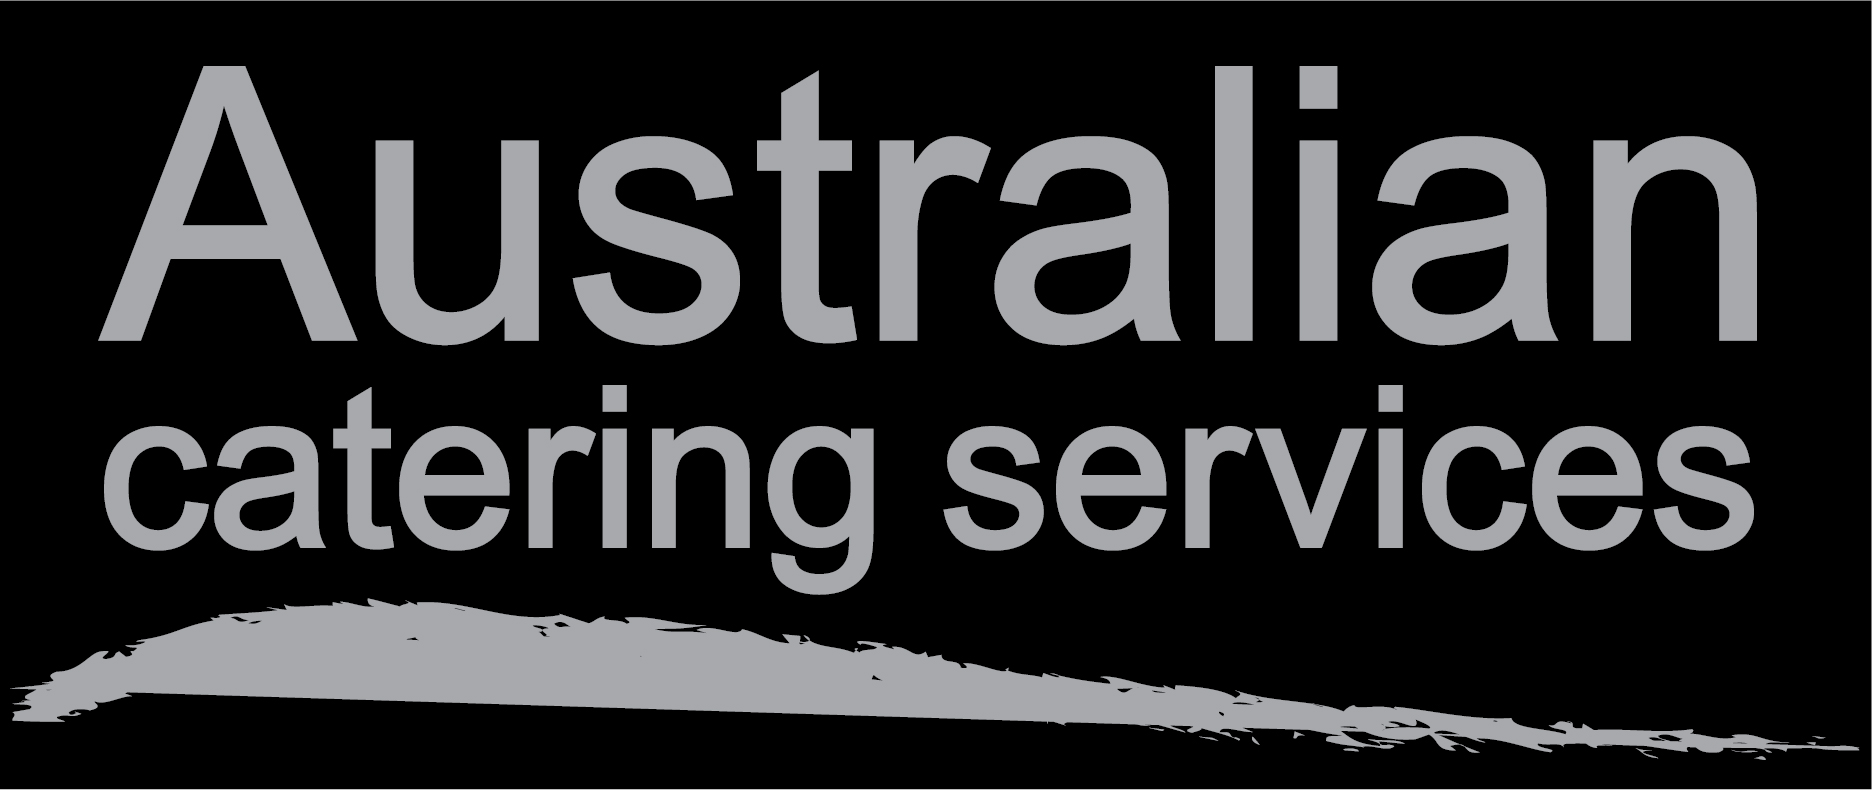 Australian Catering Services